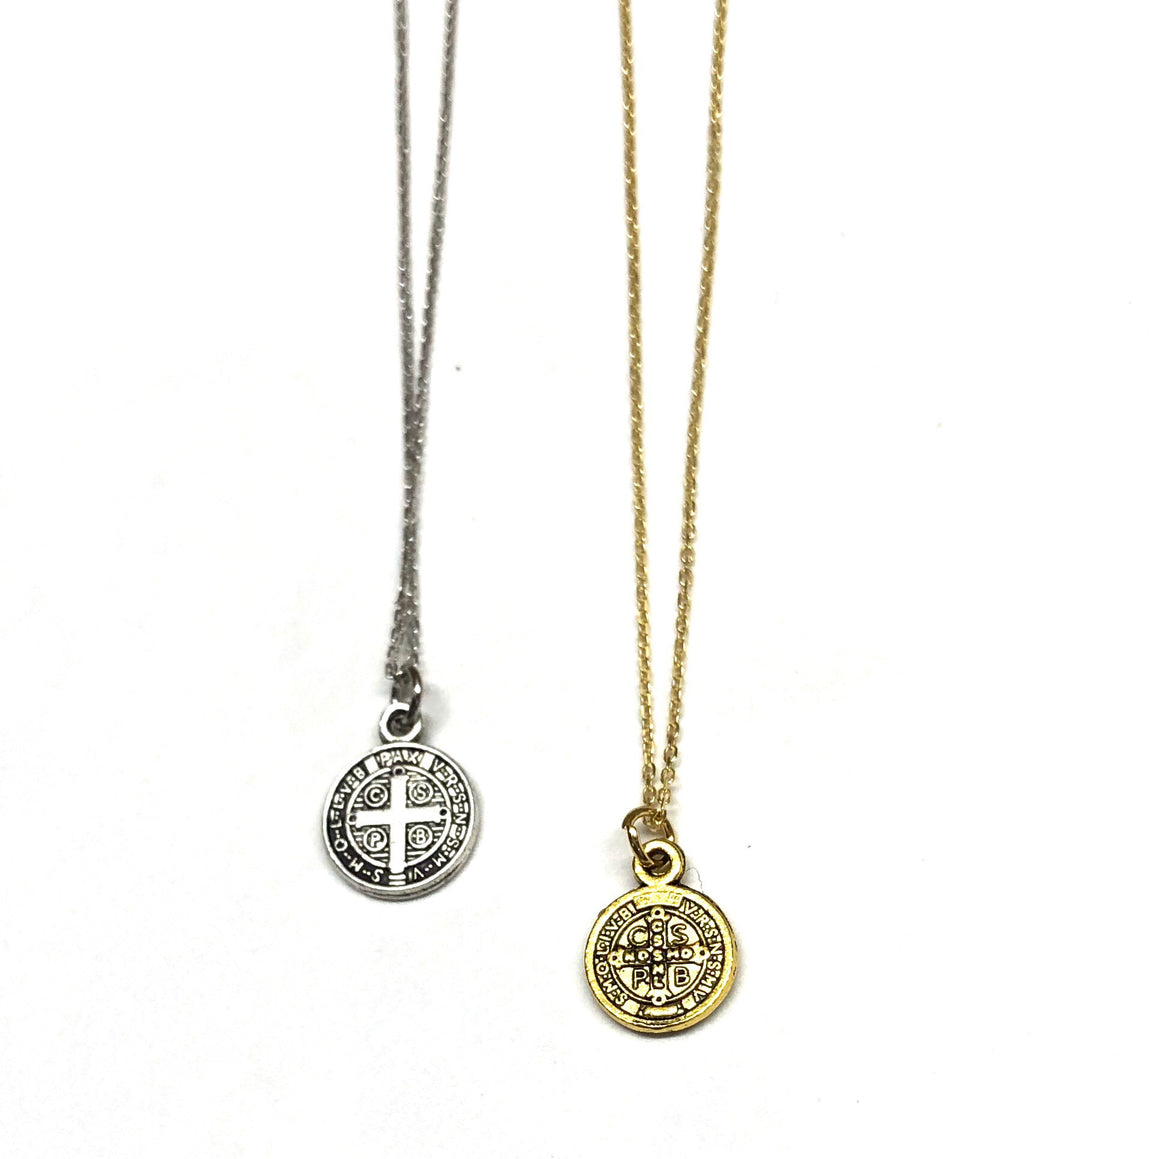 small saint necklace in silver and gold